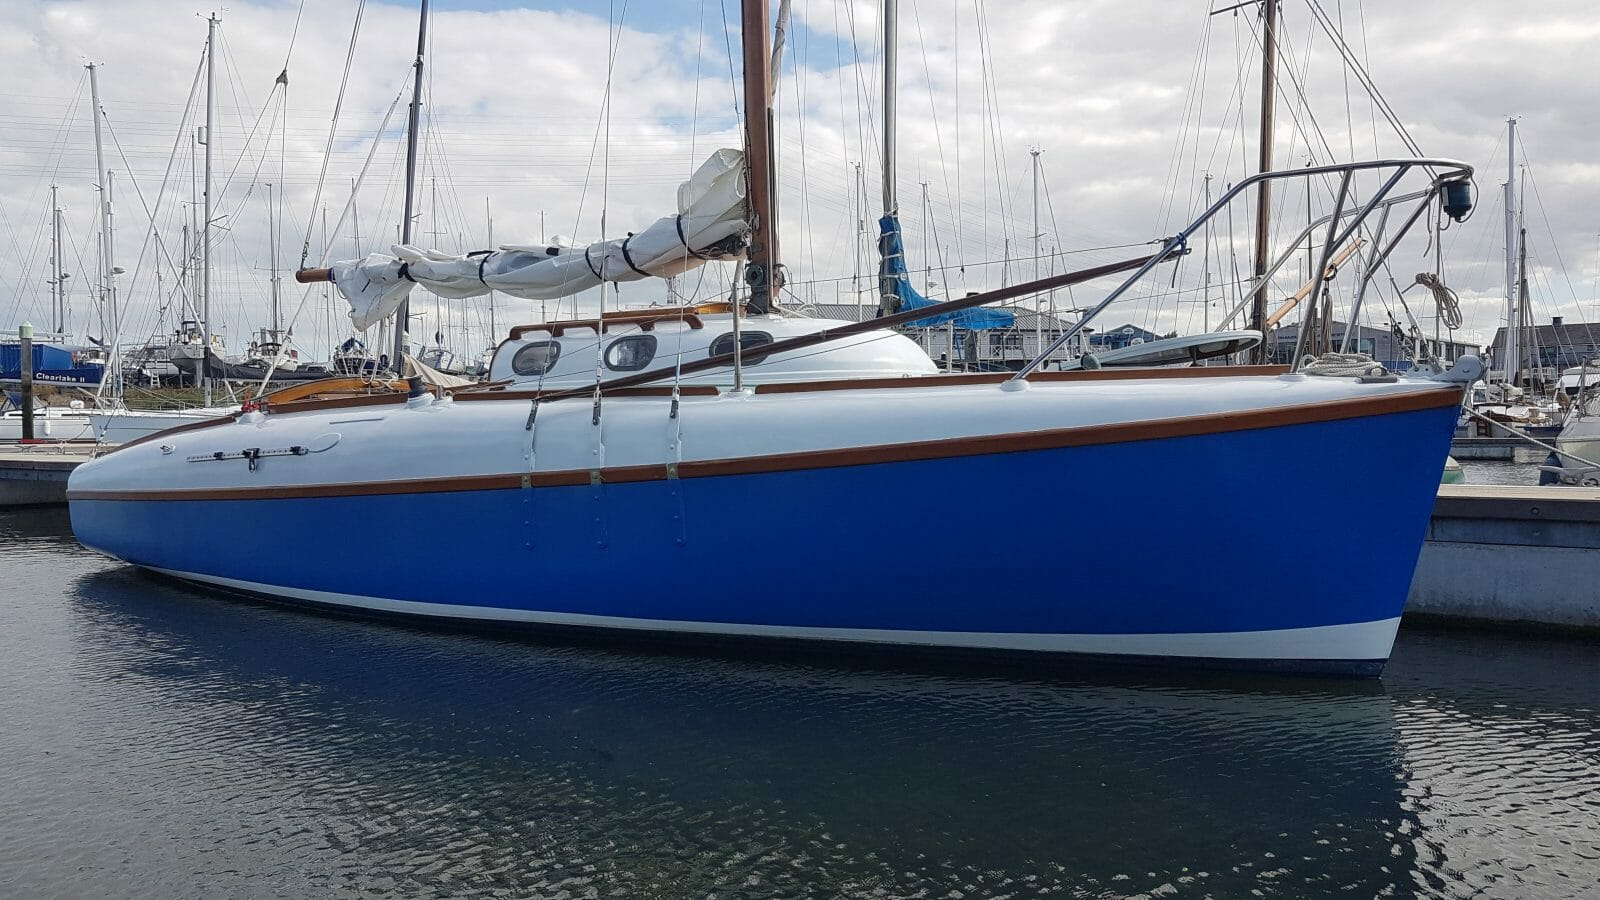 The hull and decks are in good, but not perfect, condition - starboard side